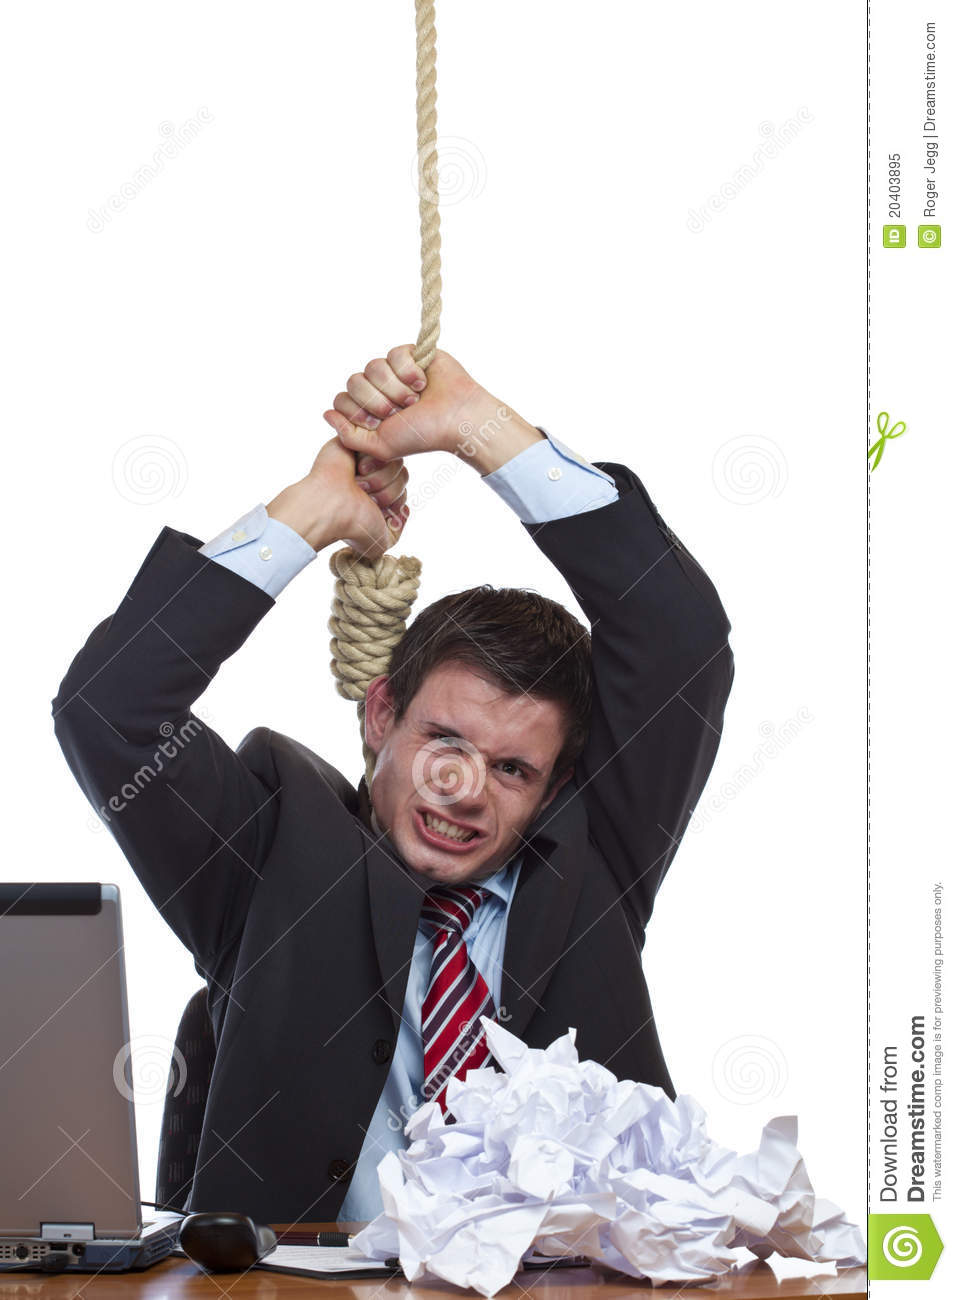 desperate-business-man-commits-suicide-office-20403895.jpg